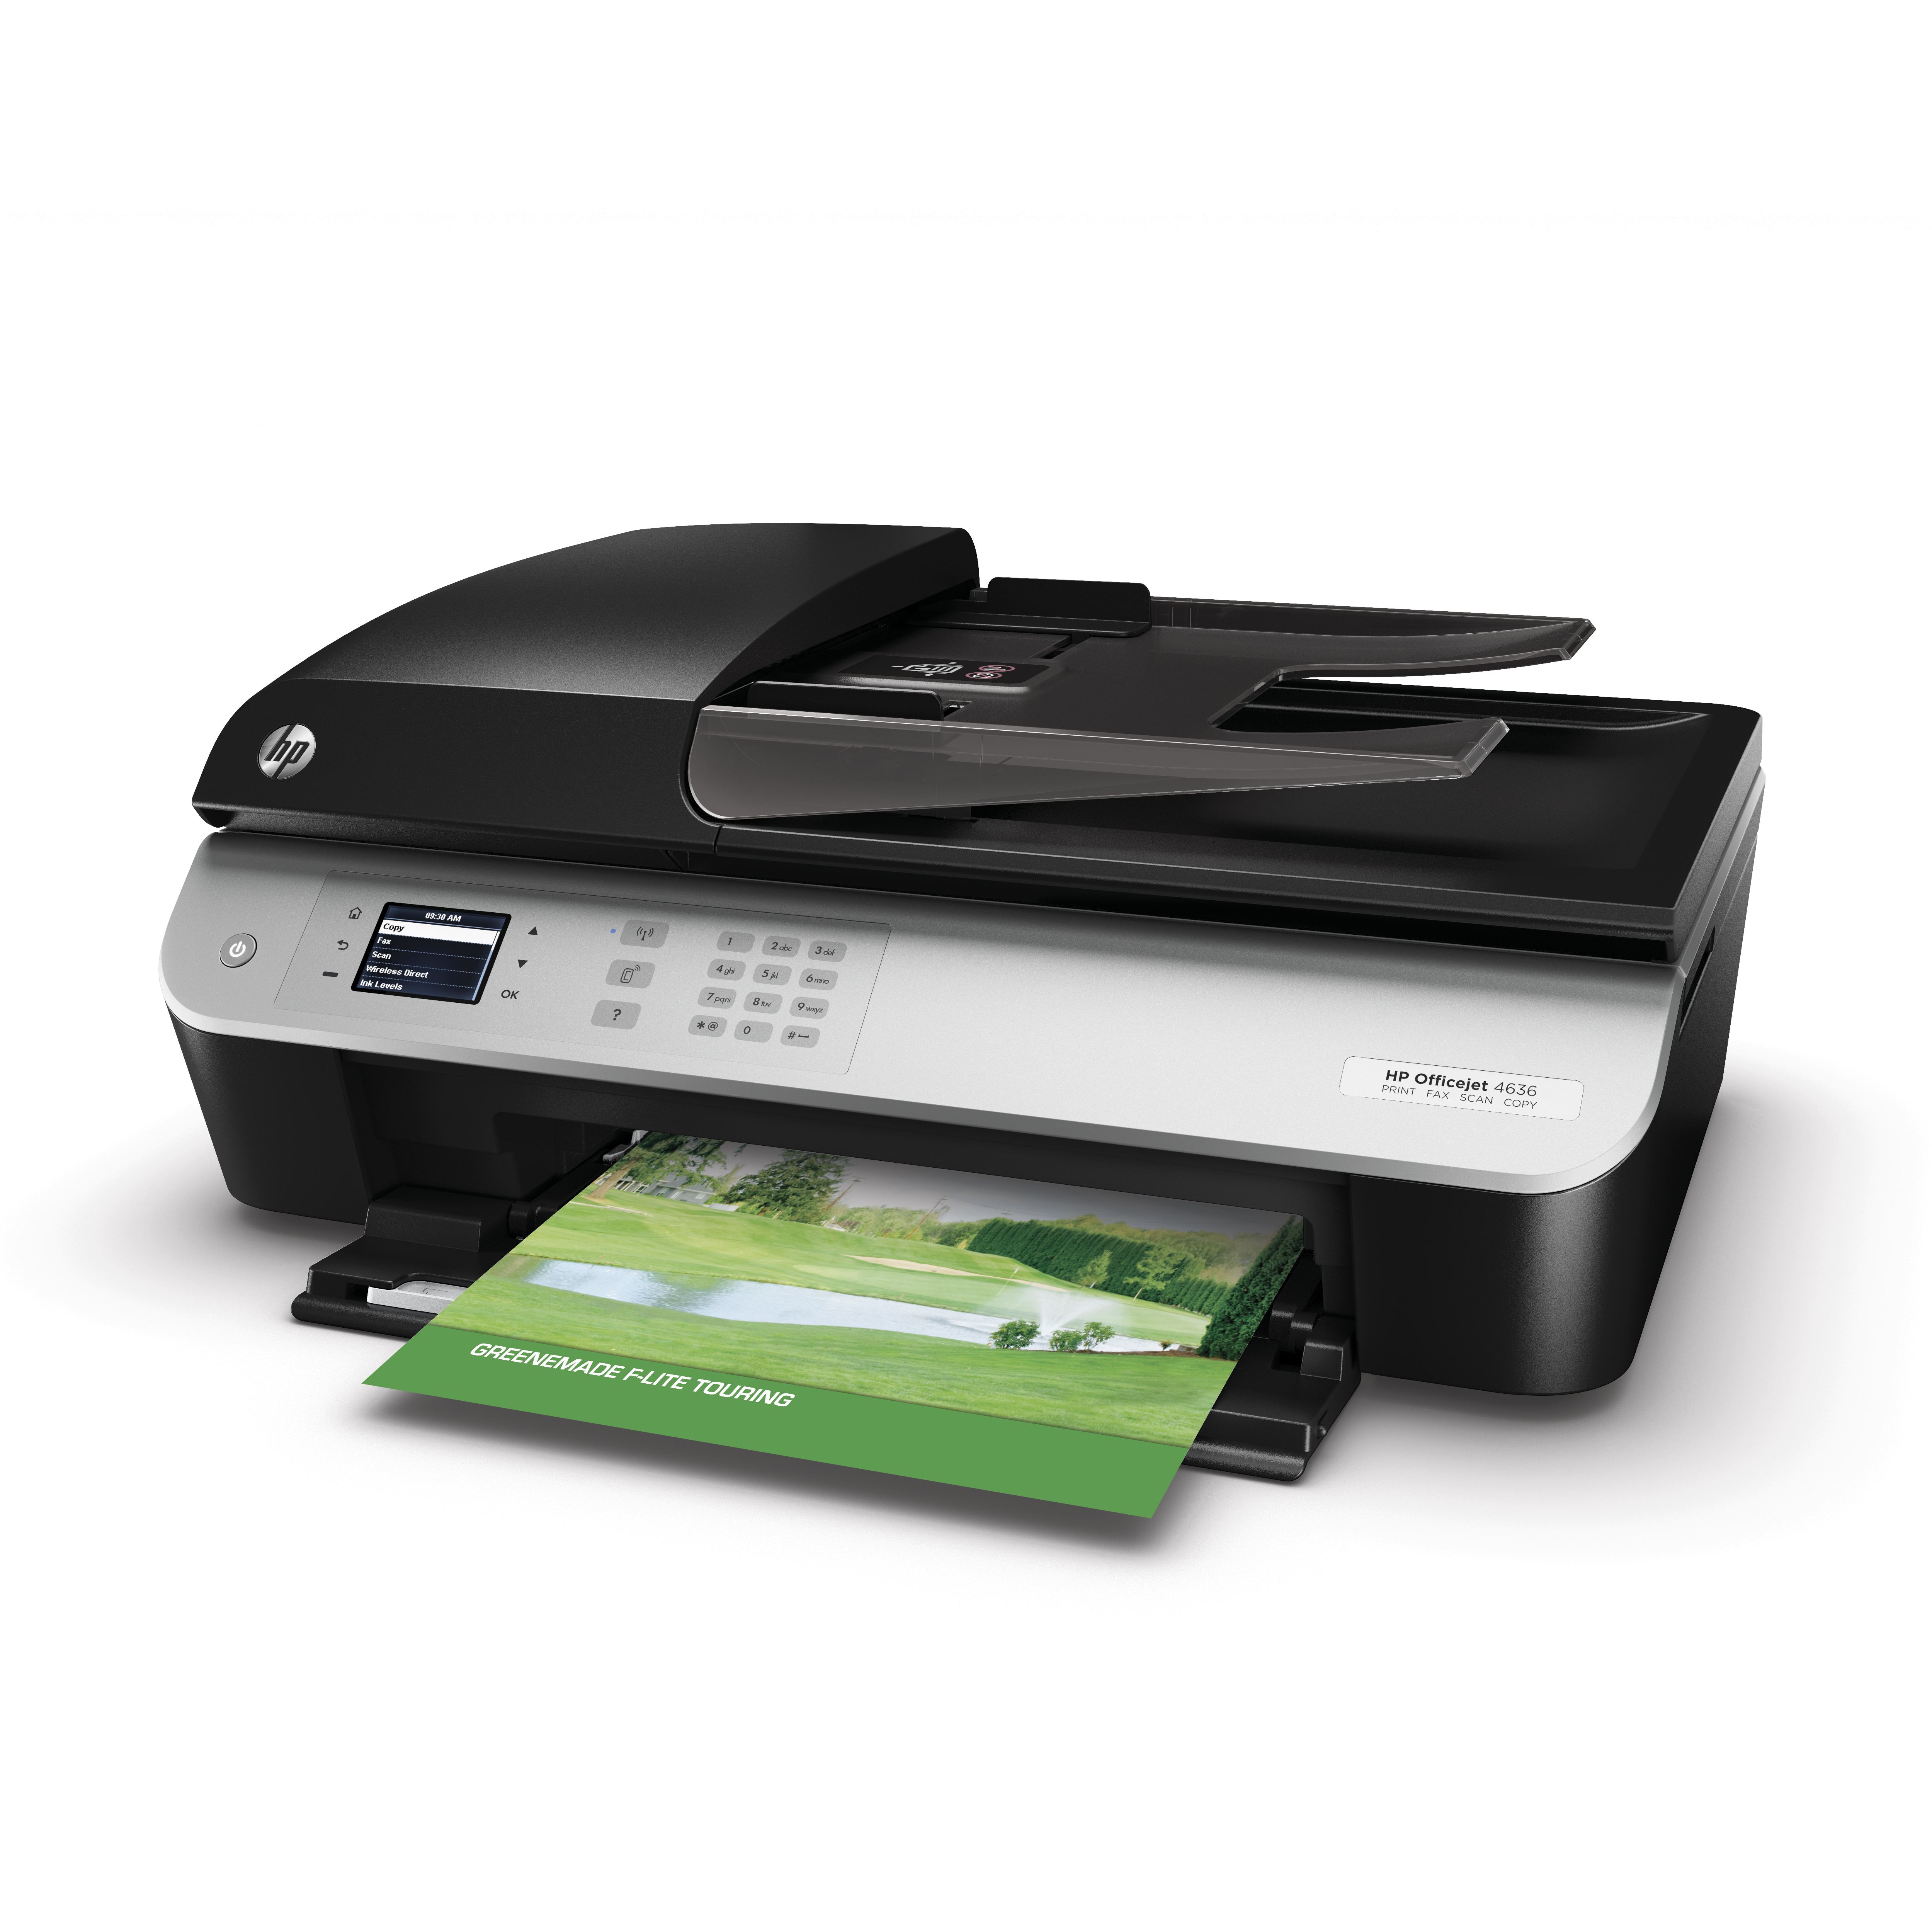 HP Officejet 4636 e-All-in-One, Left facing with output